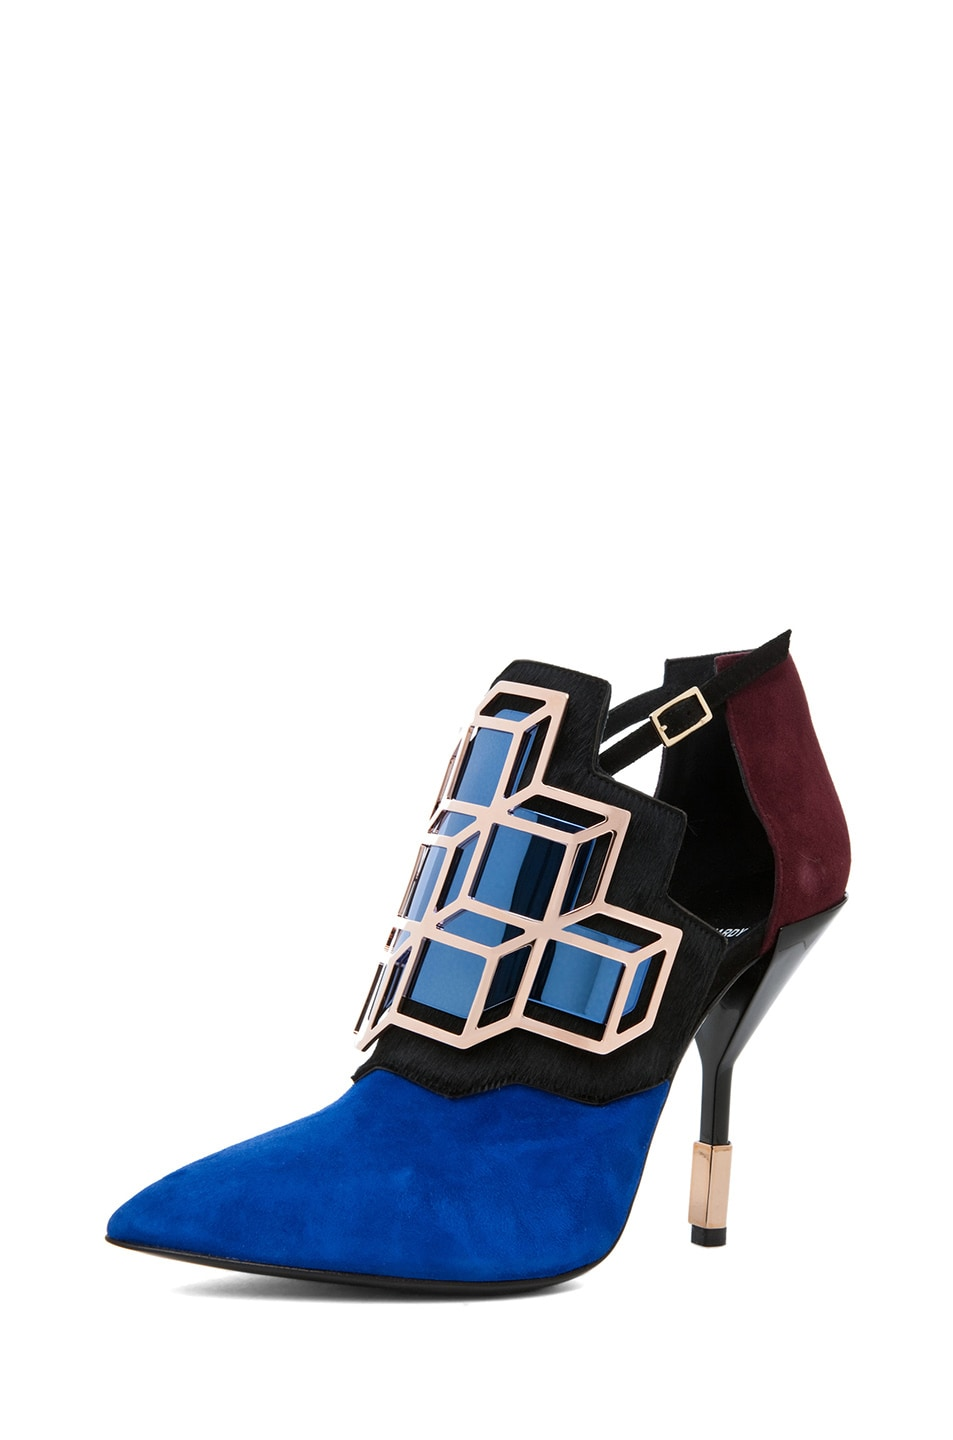 Image 2 of Pierre Hardy Suede Cube Bootie in Trico